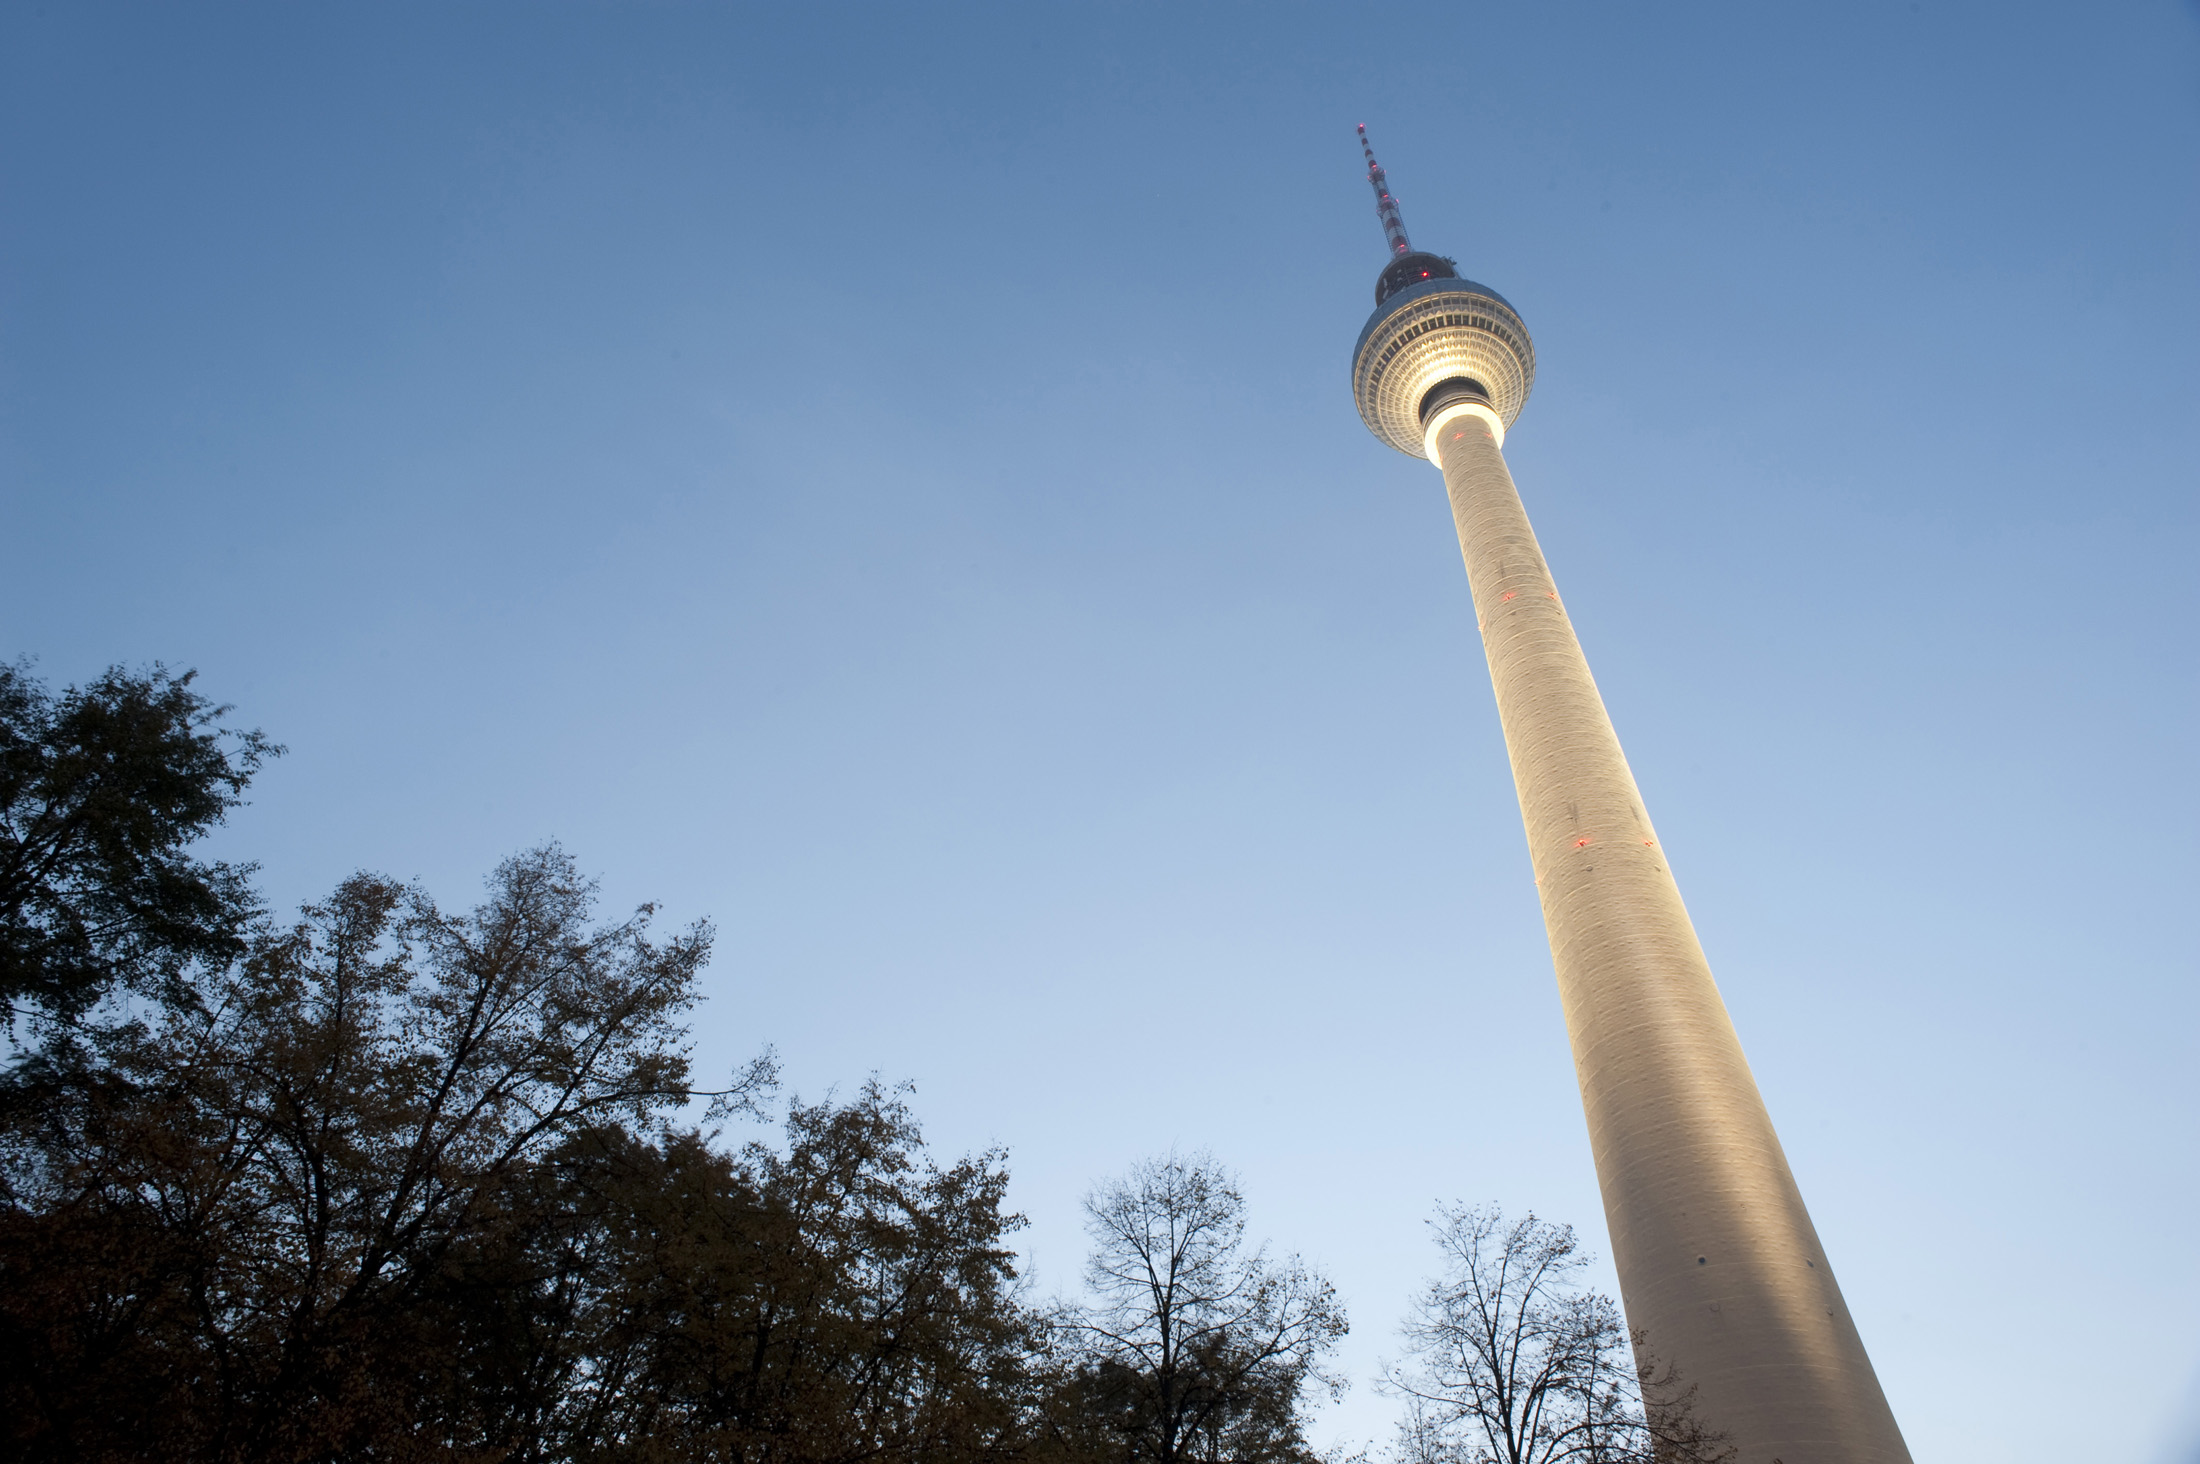 the berlin tv tower, low angle view at twilight